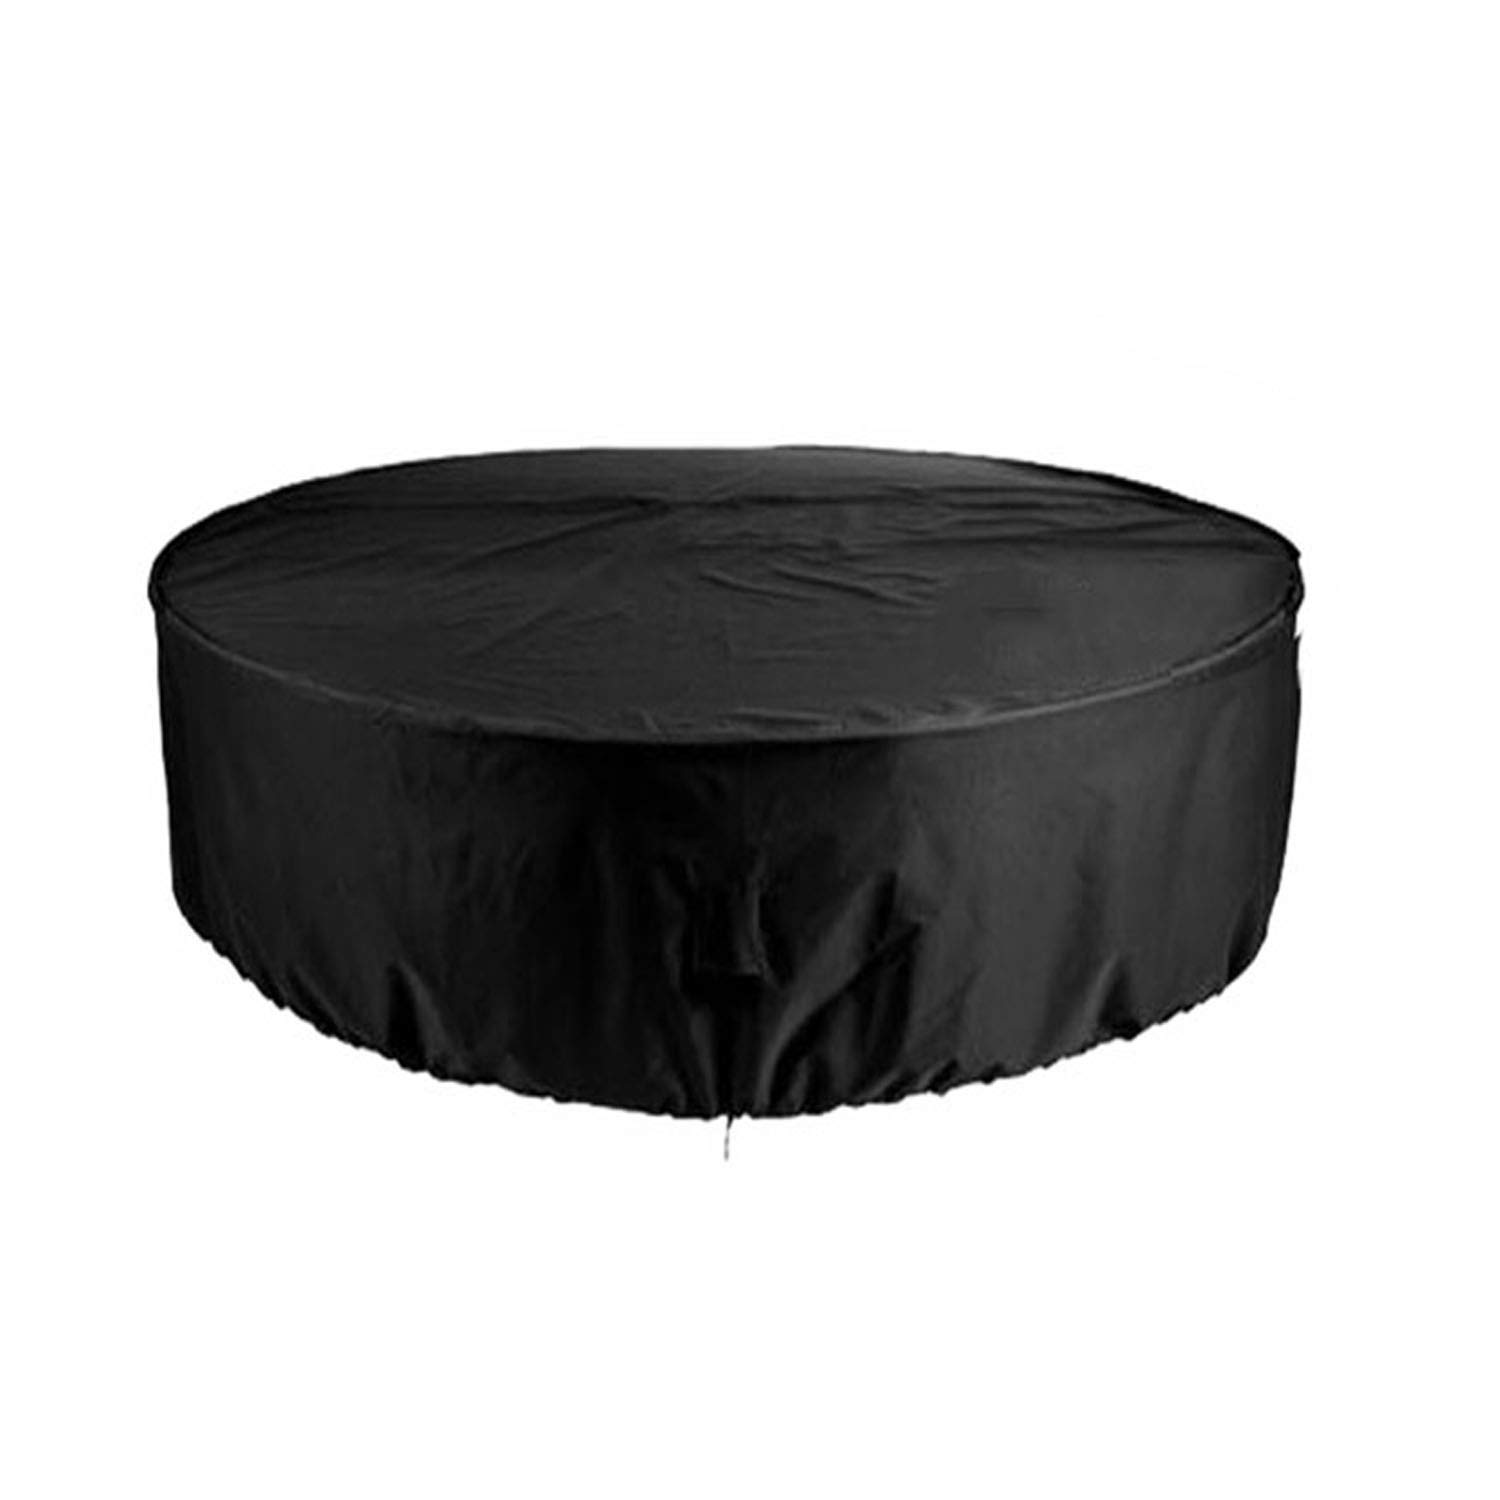 100% Waterproof, Heavy Duty Patio Round Fire Pit/Table/Bowl Cover 32-90 Inch,32''Lx32''wx16 H JHKJ